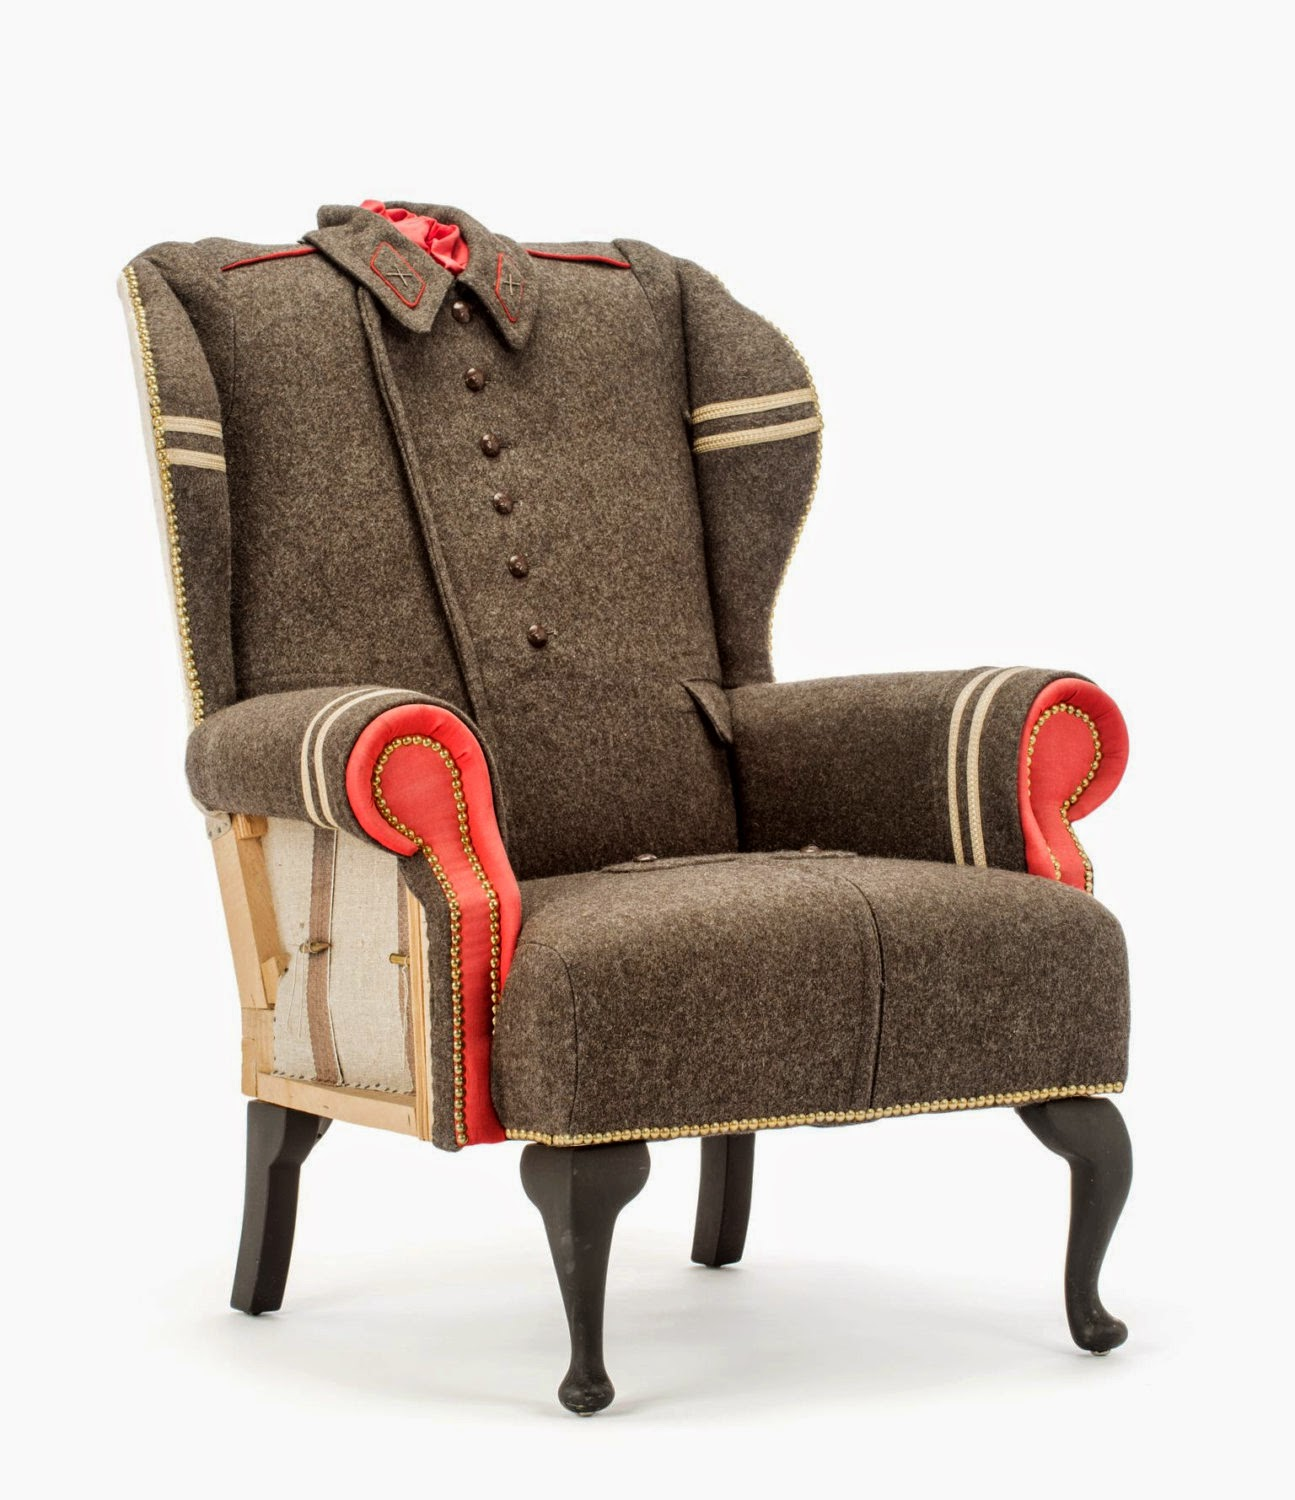 Arm Chairs Cheap Lounge Chair Cushions Design Stack A Blog About Art And Architecture